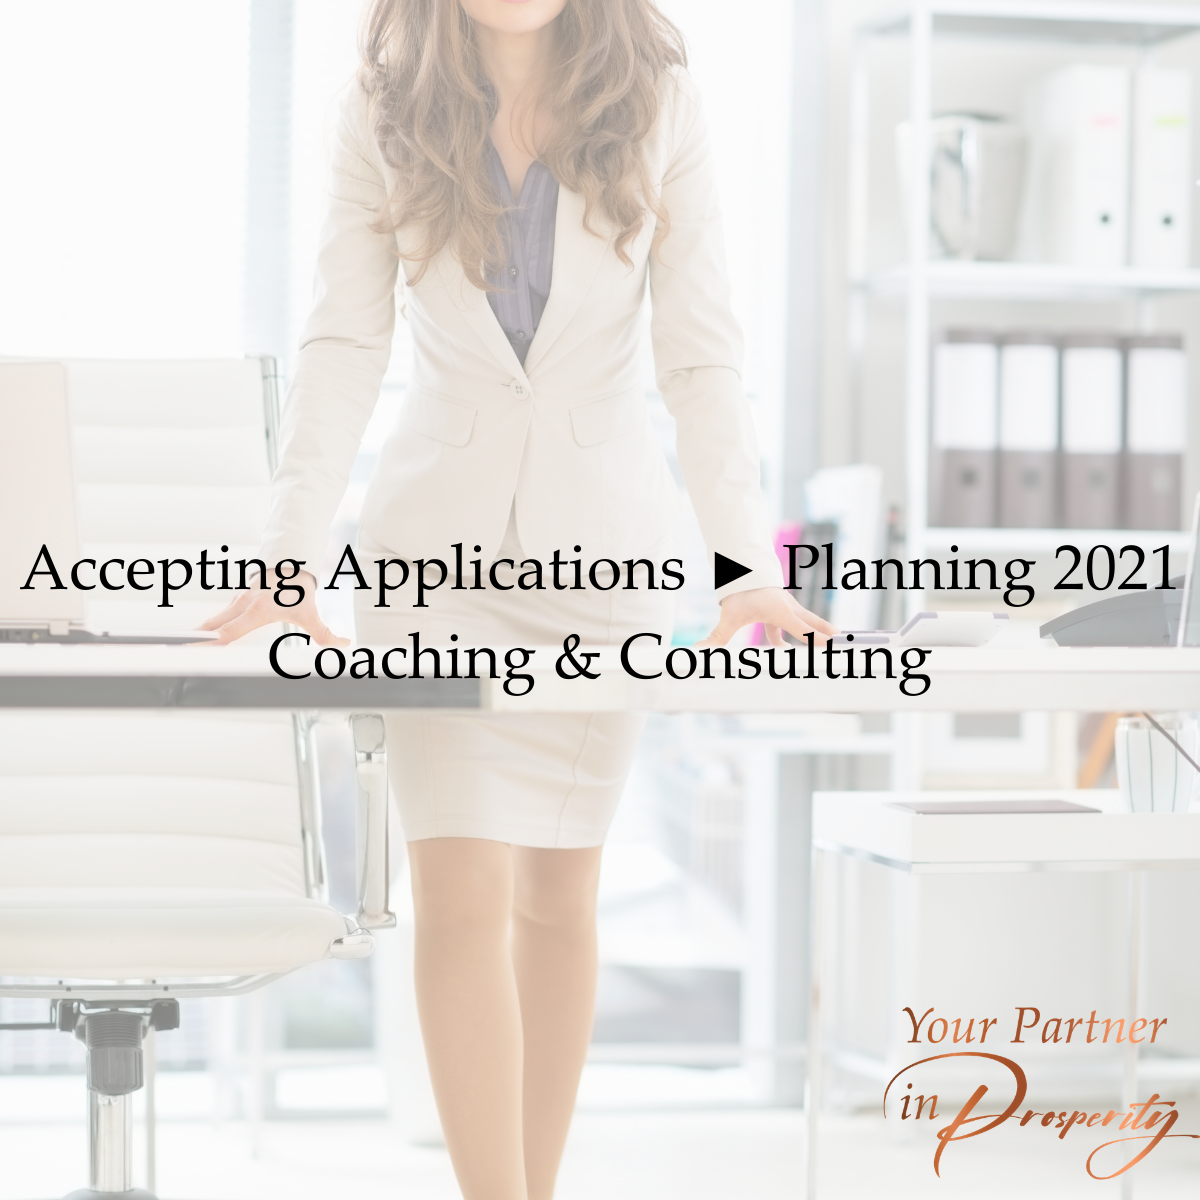 Accepting Applications ► Planning 2021 Coaching & Consulting